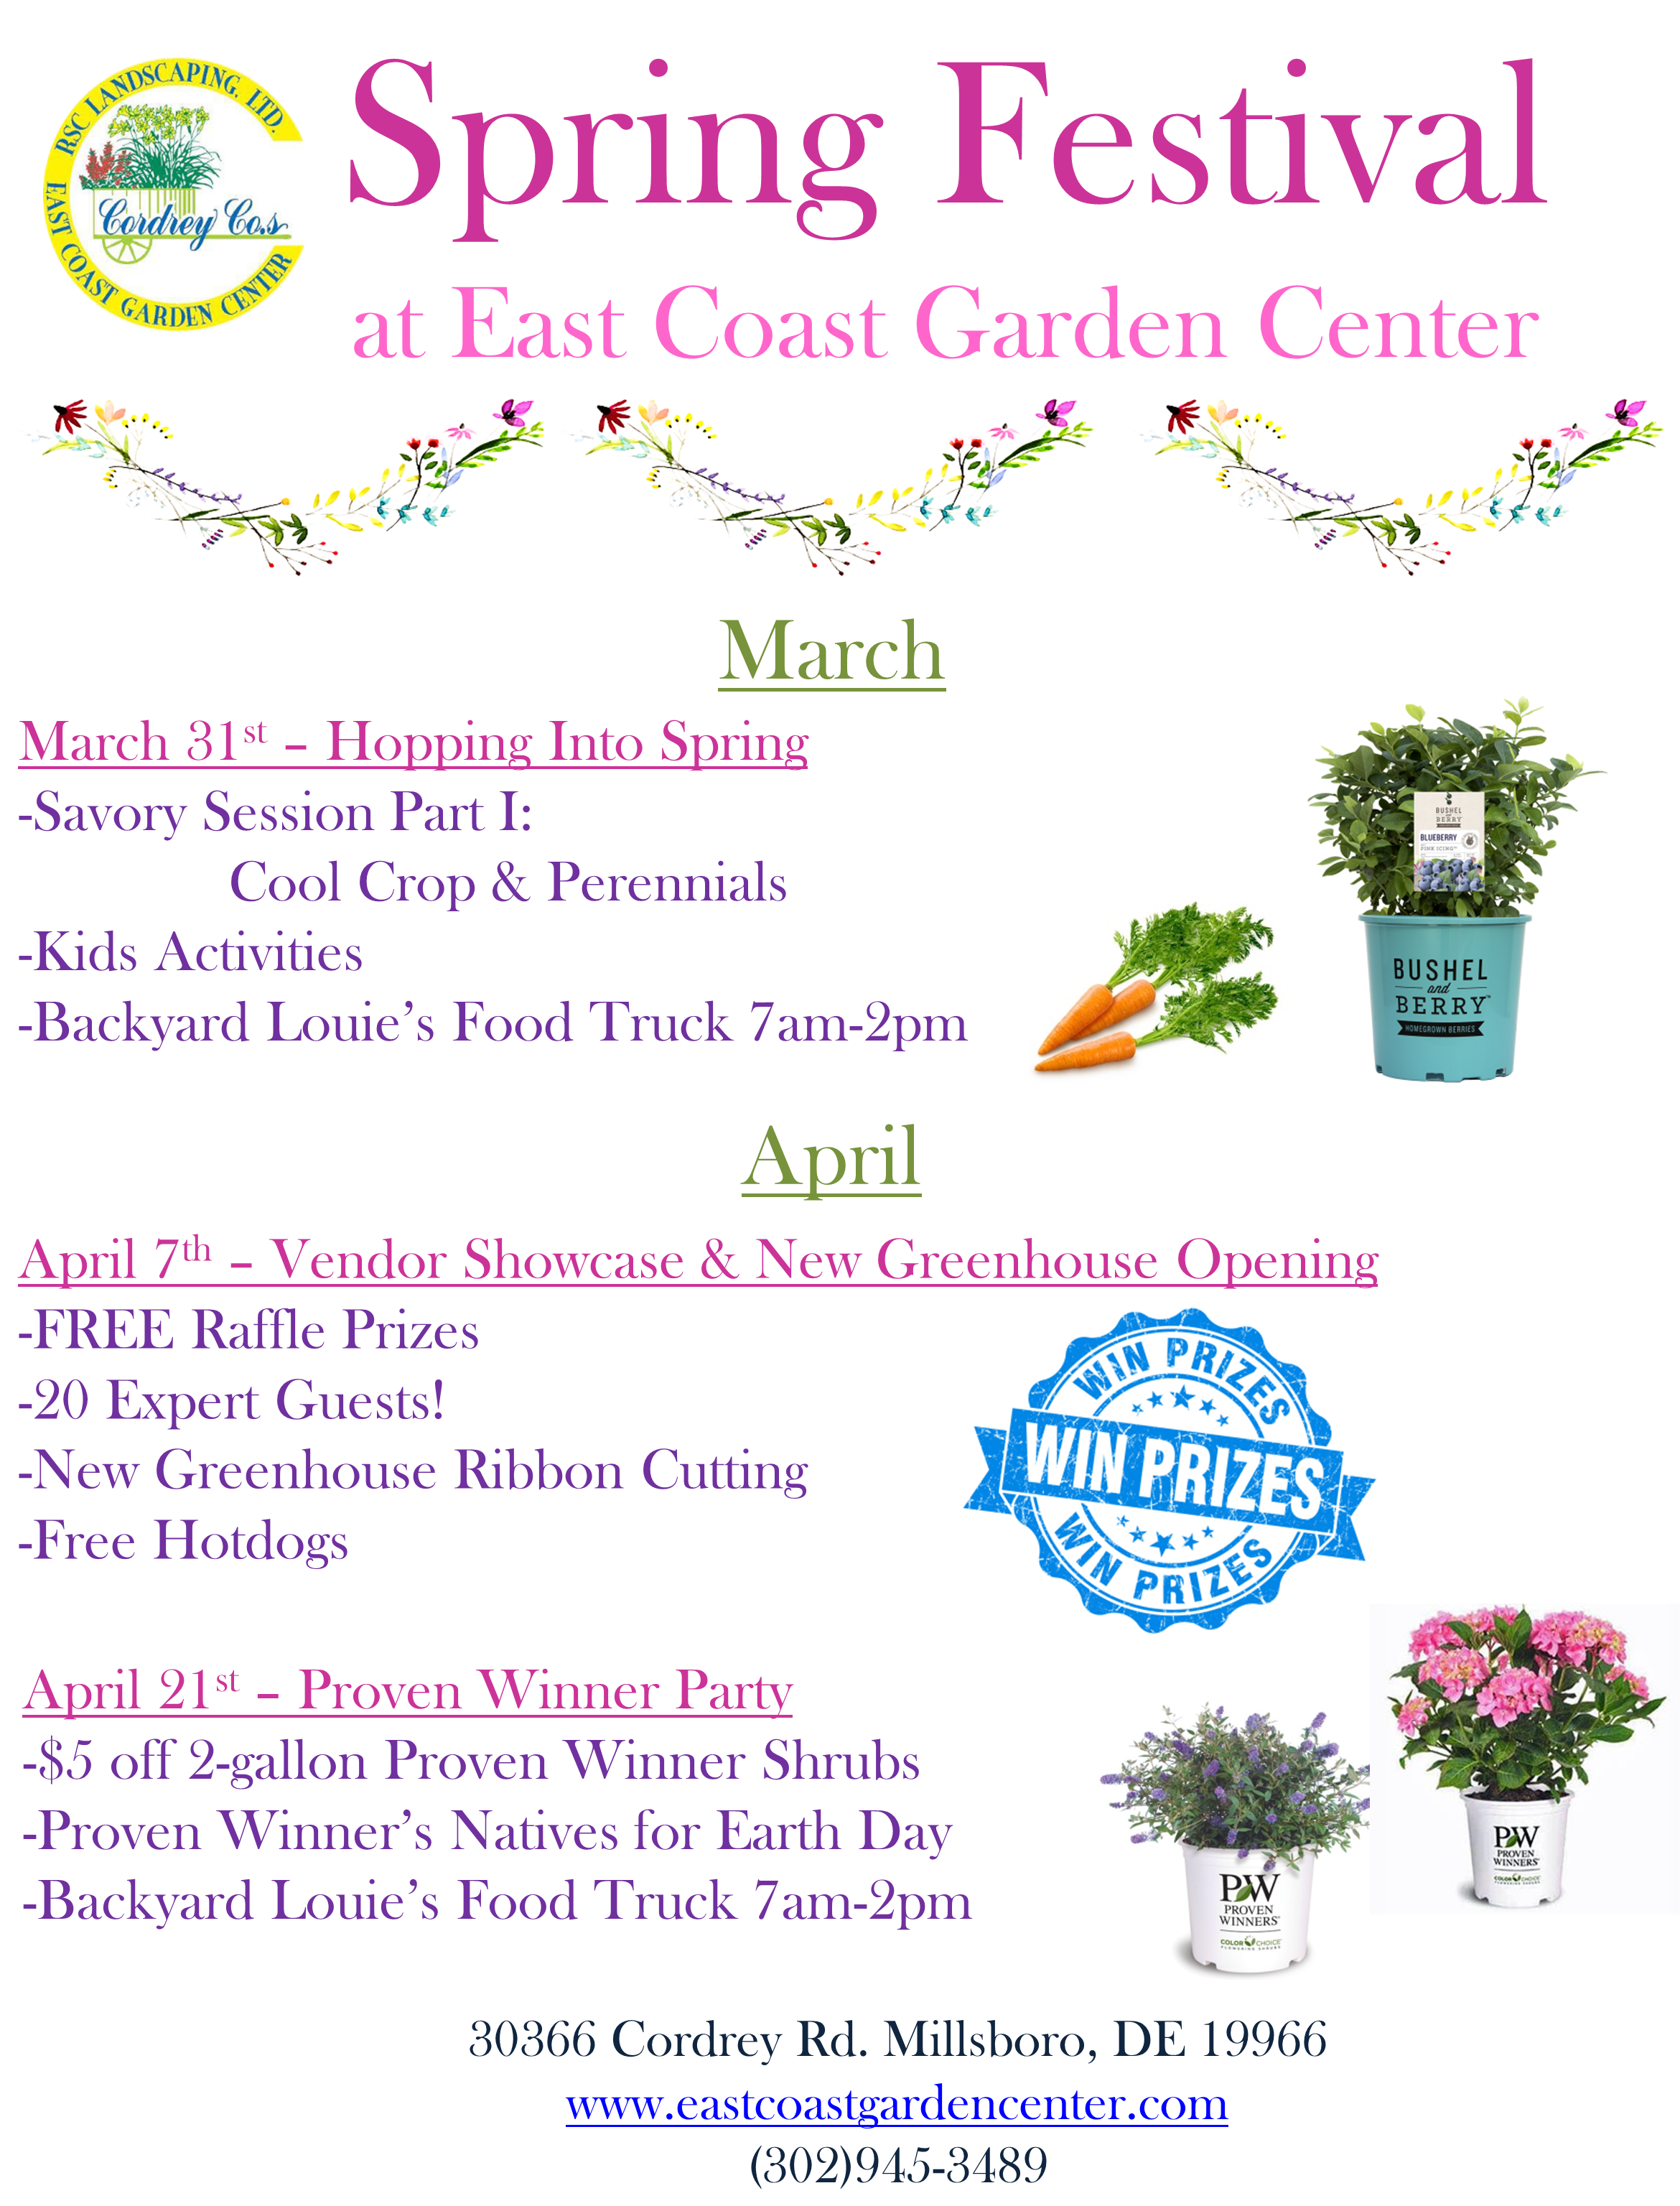 Spring Festival - Overview - East Coast Garden Center on garden christmas, garden art, flower garden in old truck, garden organic, garden market, garden vegetables, garden mediterranean, garden snake, garden grill,